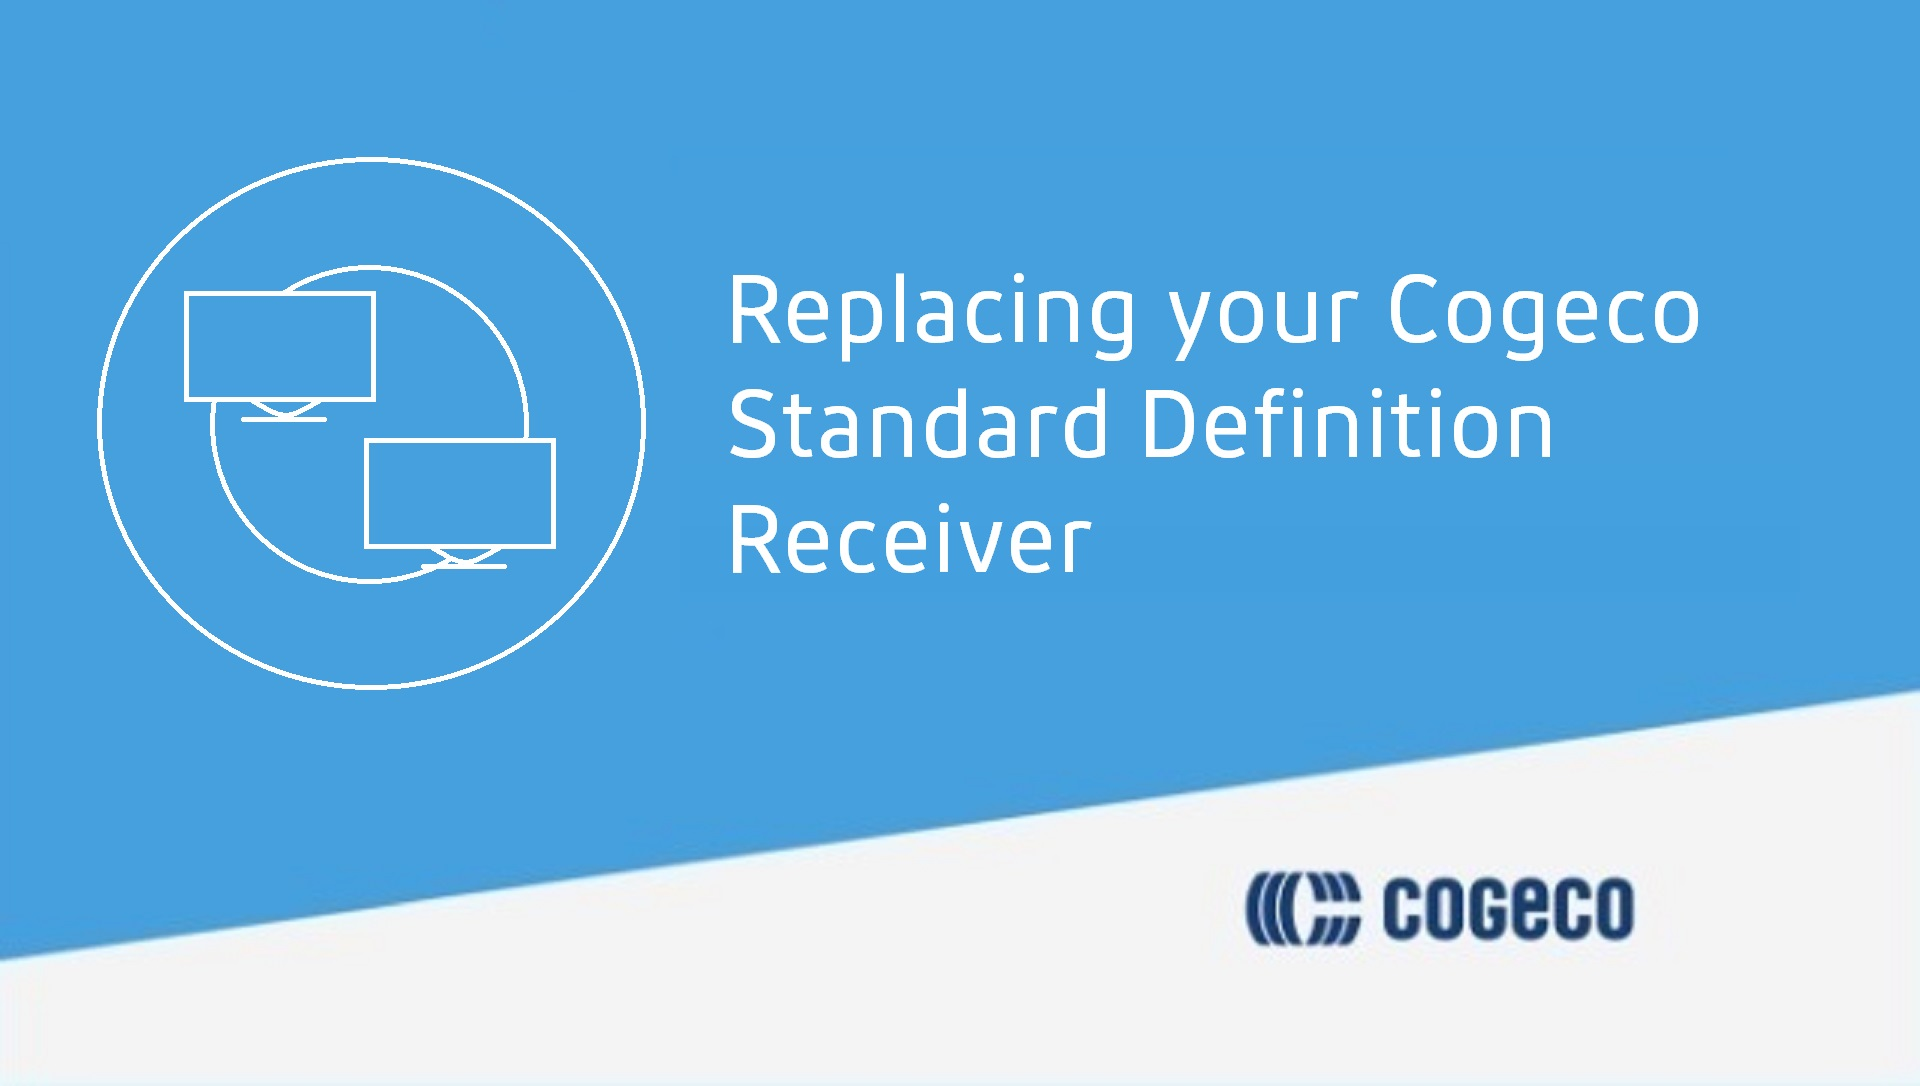 Replacing your Cogeco Standard Definition Receiver